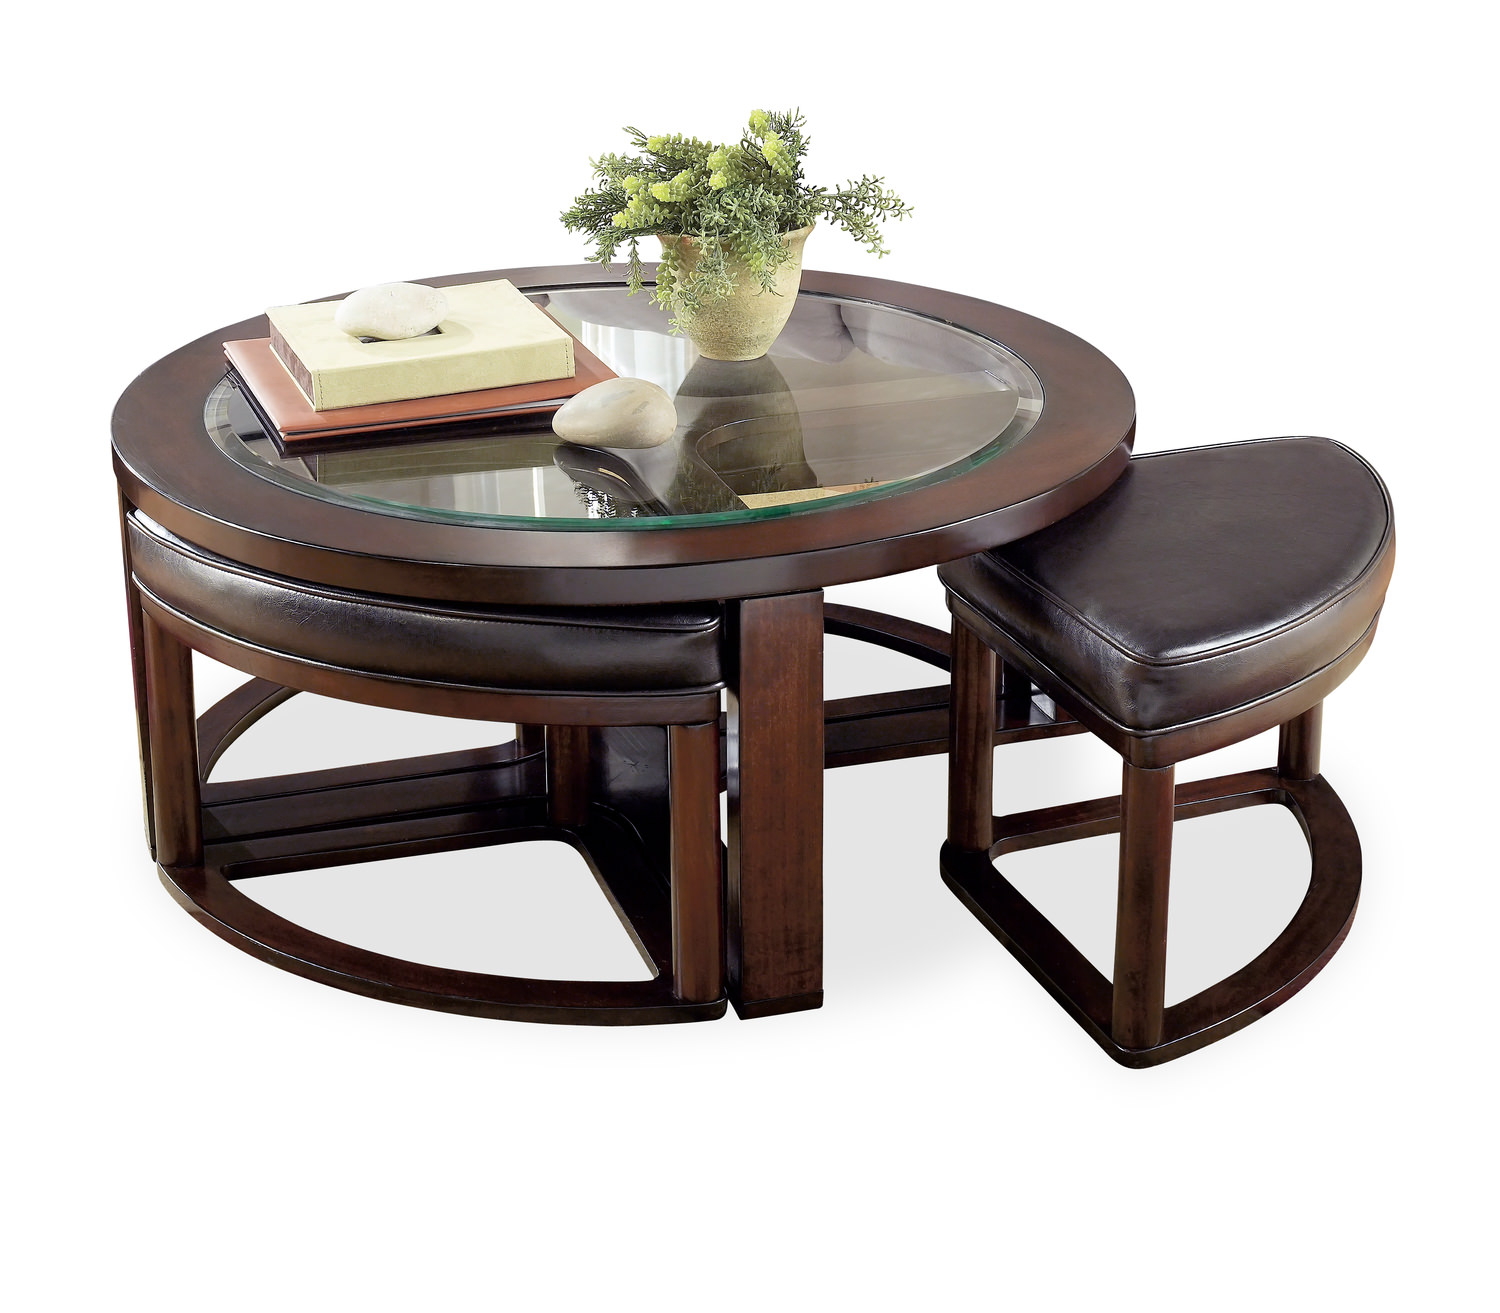 Marion Round Coffee Table With 4 Ottomans HOM Furniture